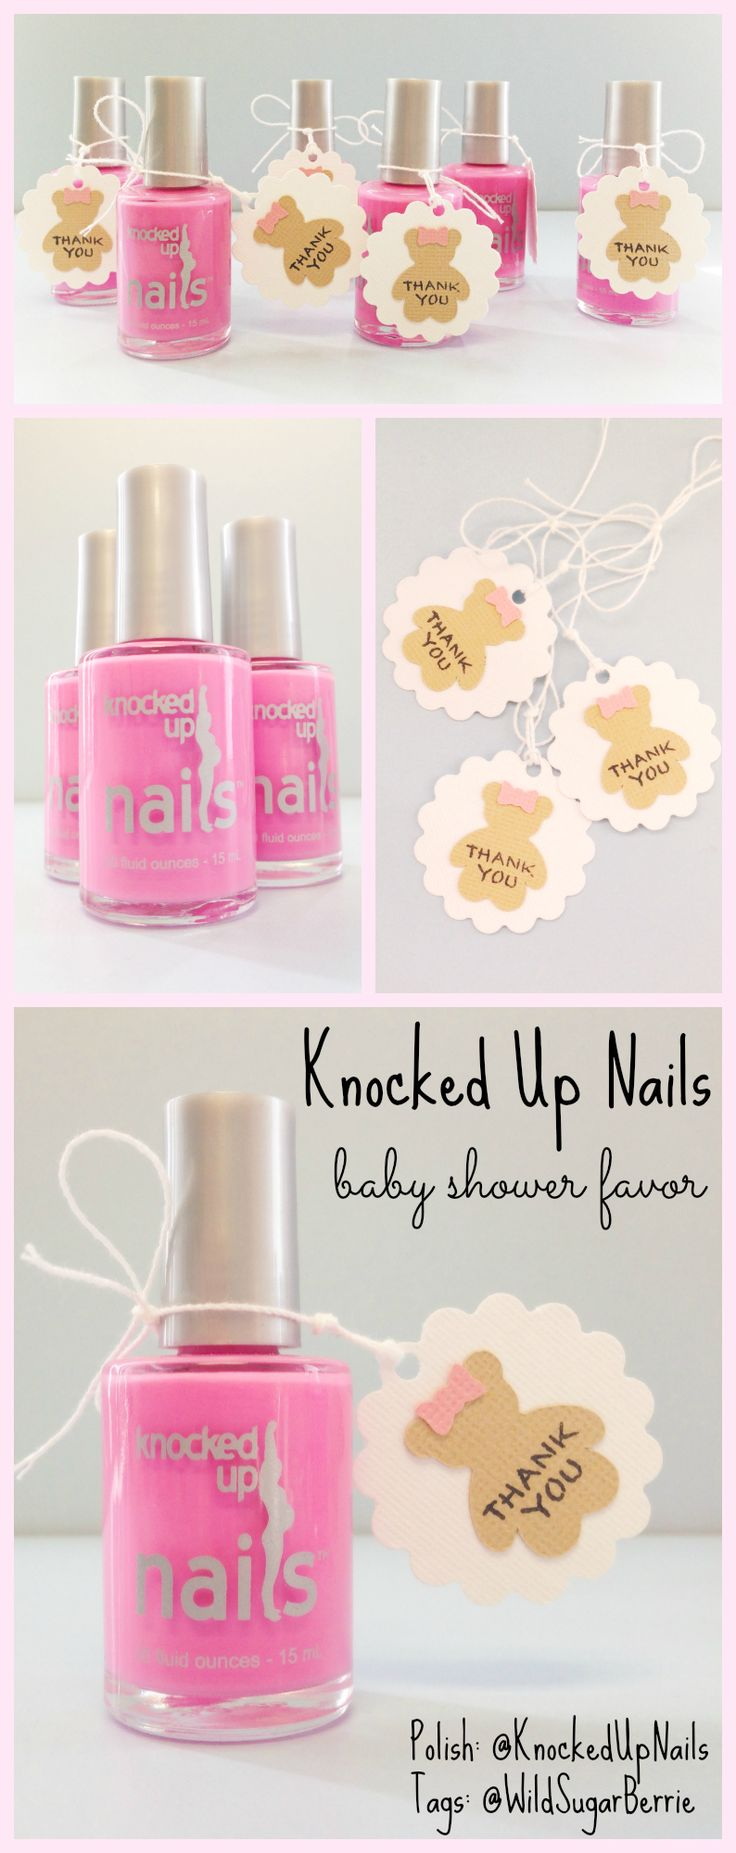 Is Nail Polish Safe For Babies - Creative Touch